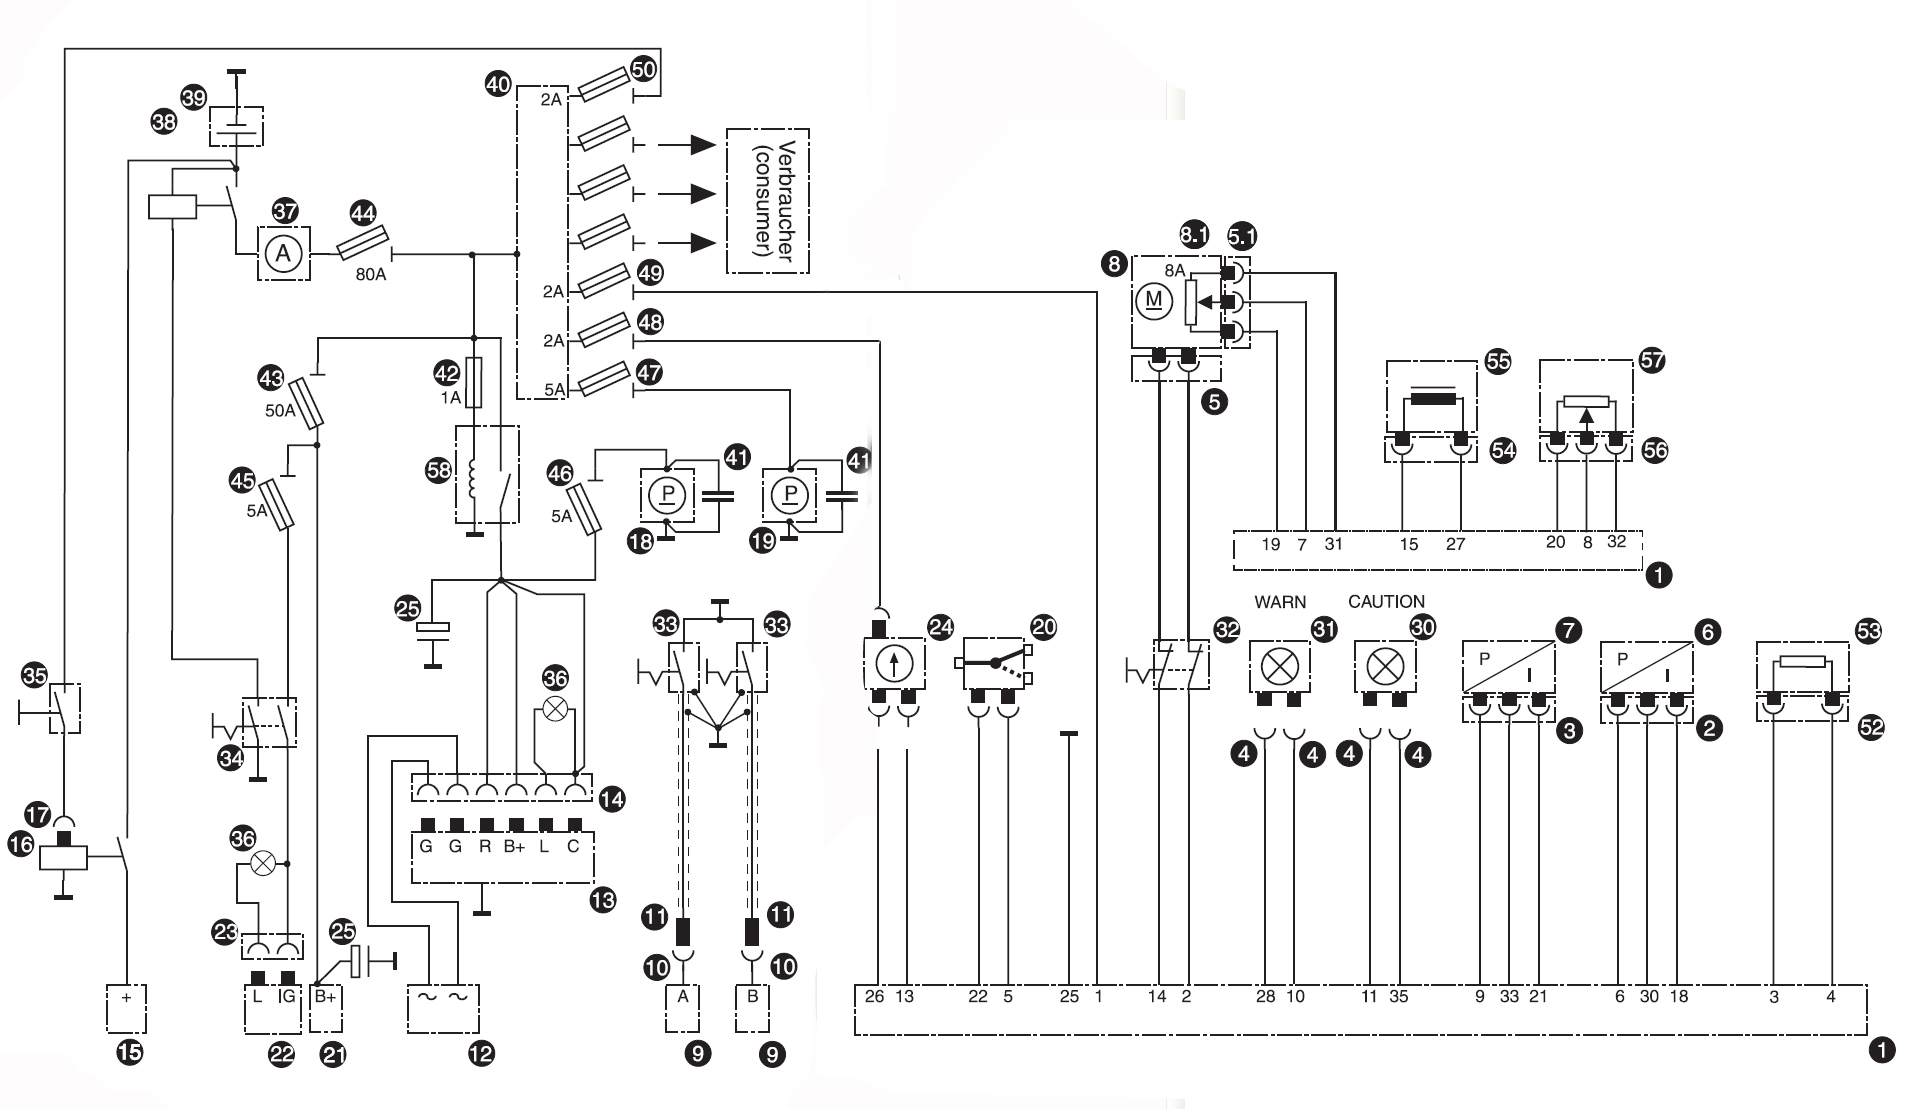 Rotax 912 Wiring Diagram - Wiring Diagram Perfomance on bar diagram, platform diagram, land description diagram, conversation diagram, chair diagram, aluminum diagram, couch diagram, steel diagram, theater diagram, political diagram, section diagram, recliner diagram, wood diagram, social diagram, mirror diagram, power diagram, artery vs vein diagram, service diagram, server diagram, furniture diagram,